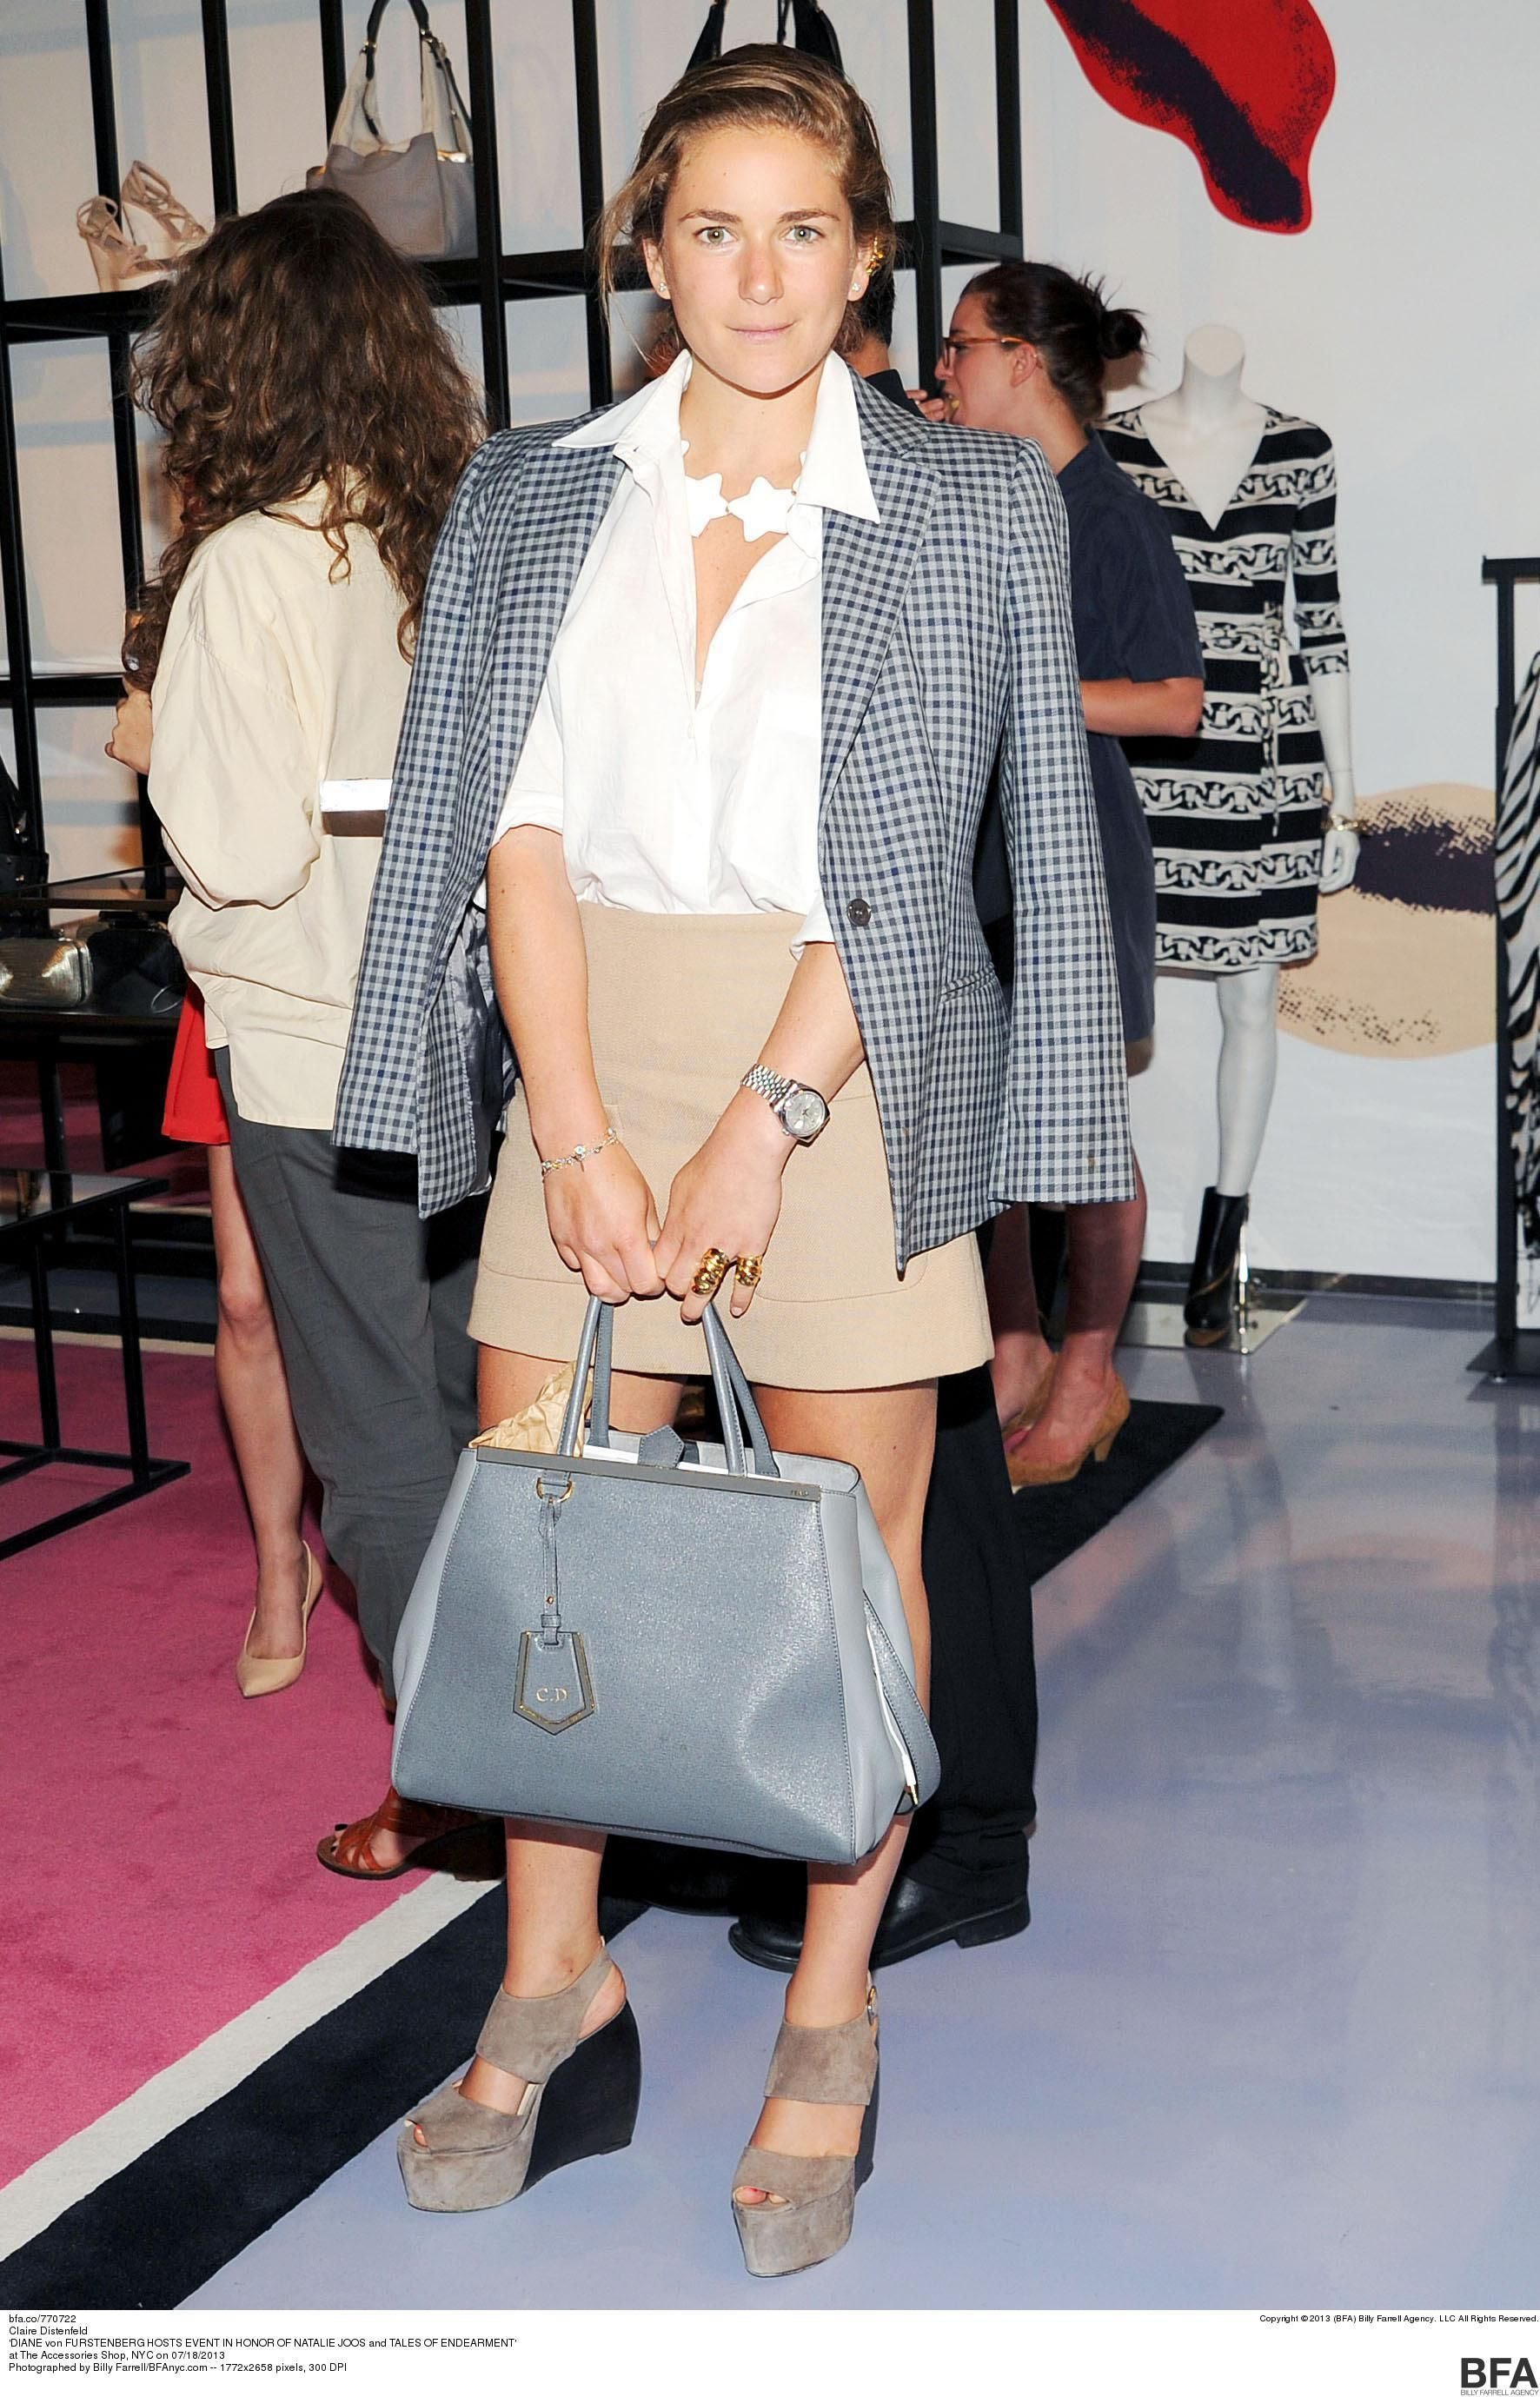 What is Claire Distenfeld's most wanted #NYFW item?